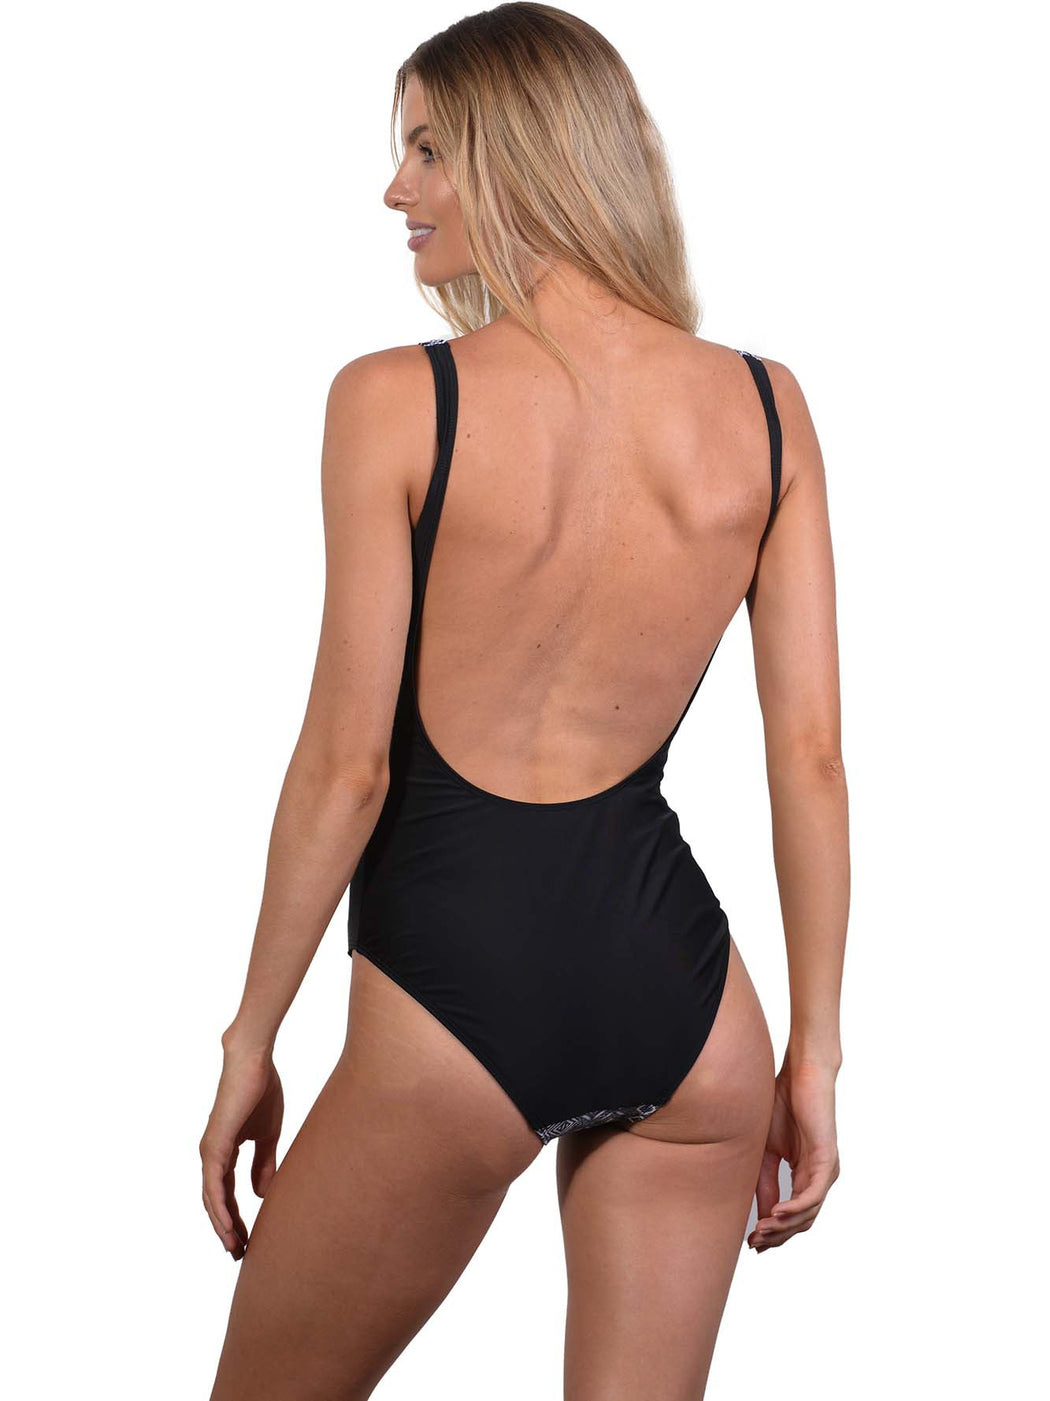 Zanzibar Zip-Front Onepiece by Finch Swim back view